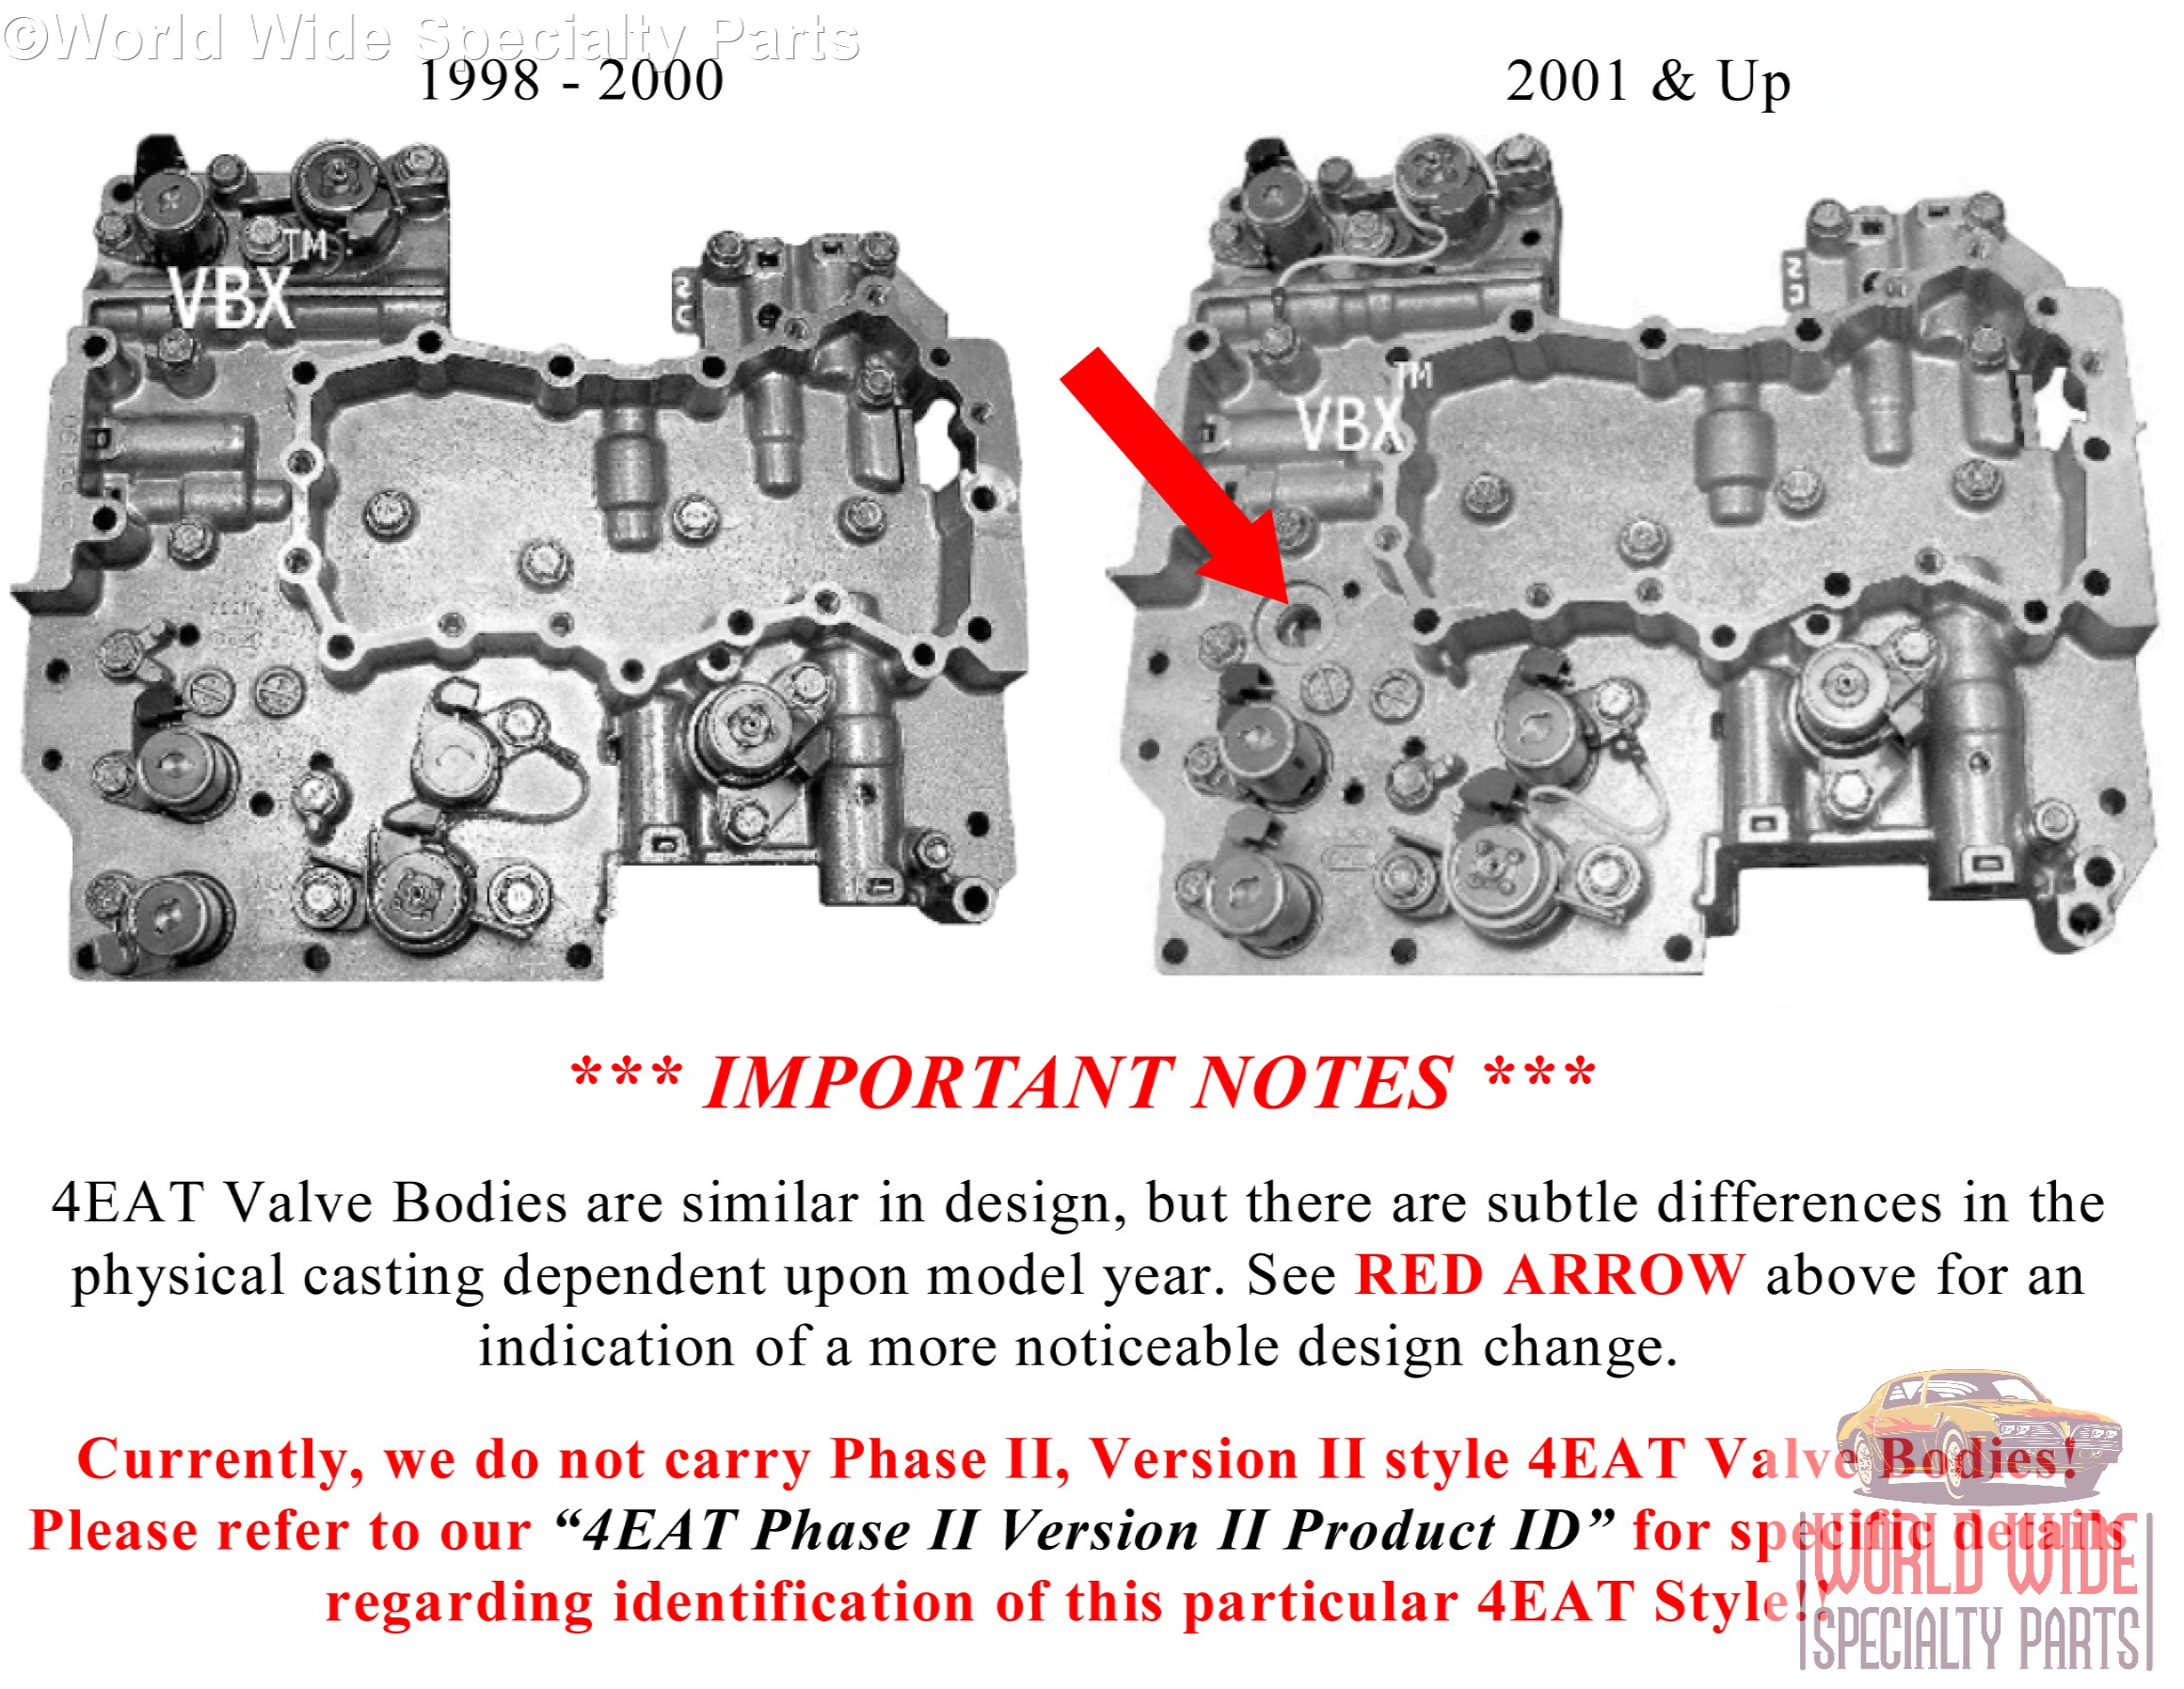 Details about Subaru 4EAT Valve Body 1998-2000 (LIFETIME WARRANTY) Sonnax  Built, Dyno Tested